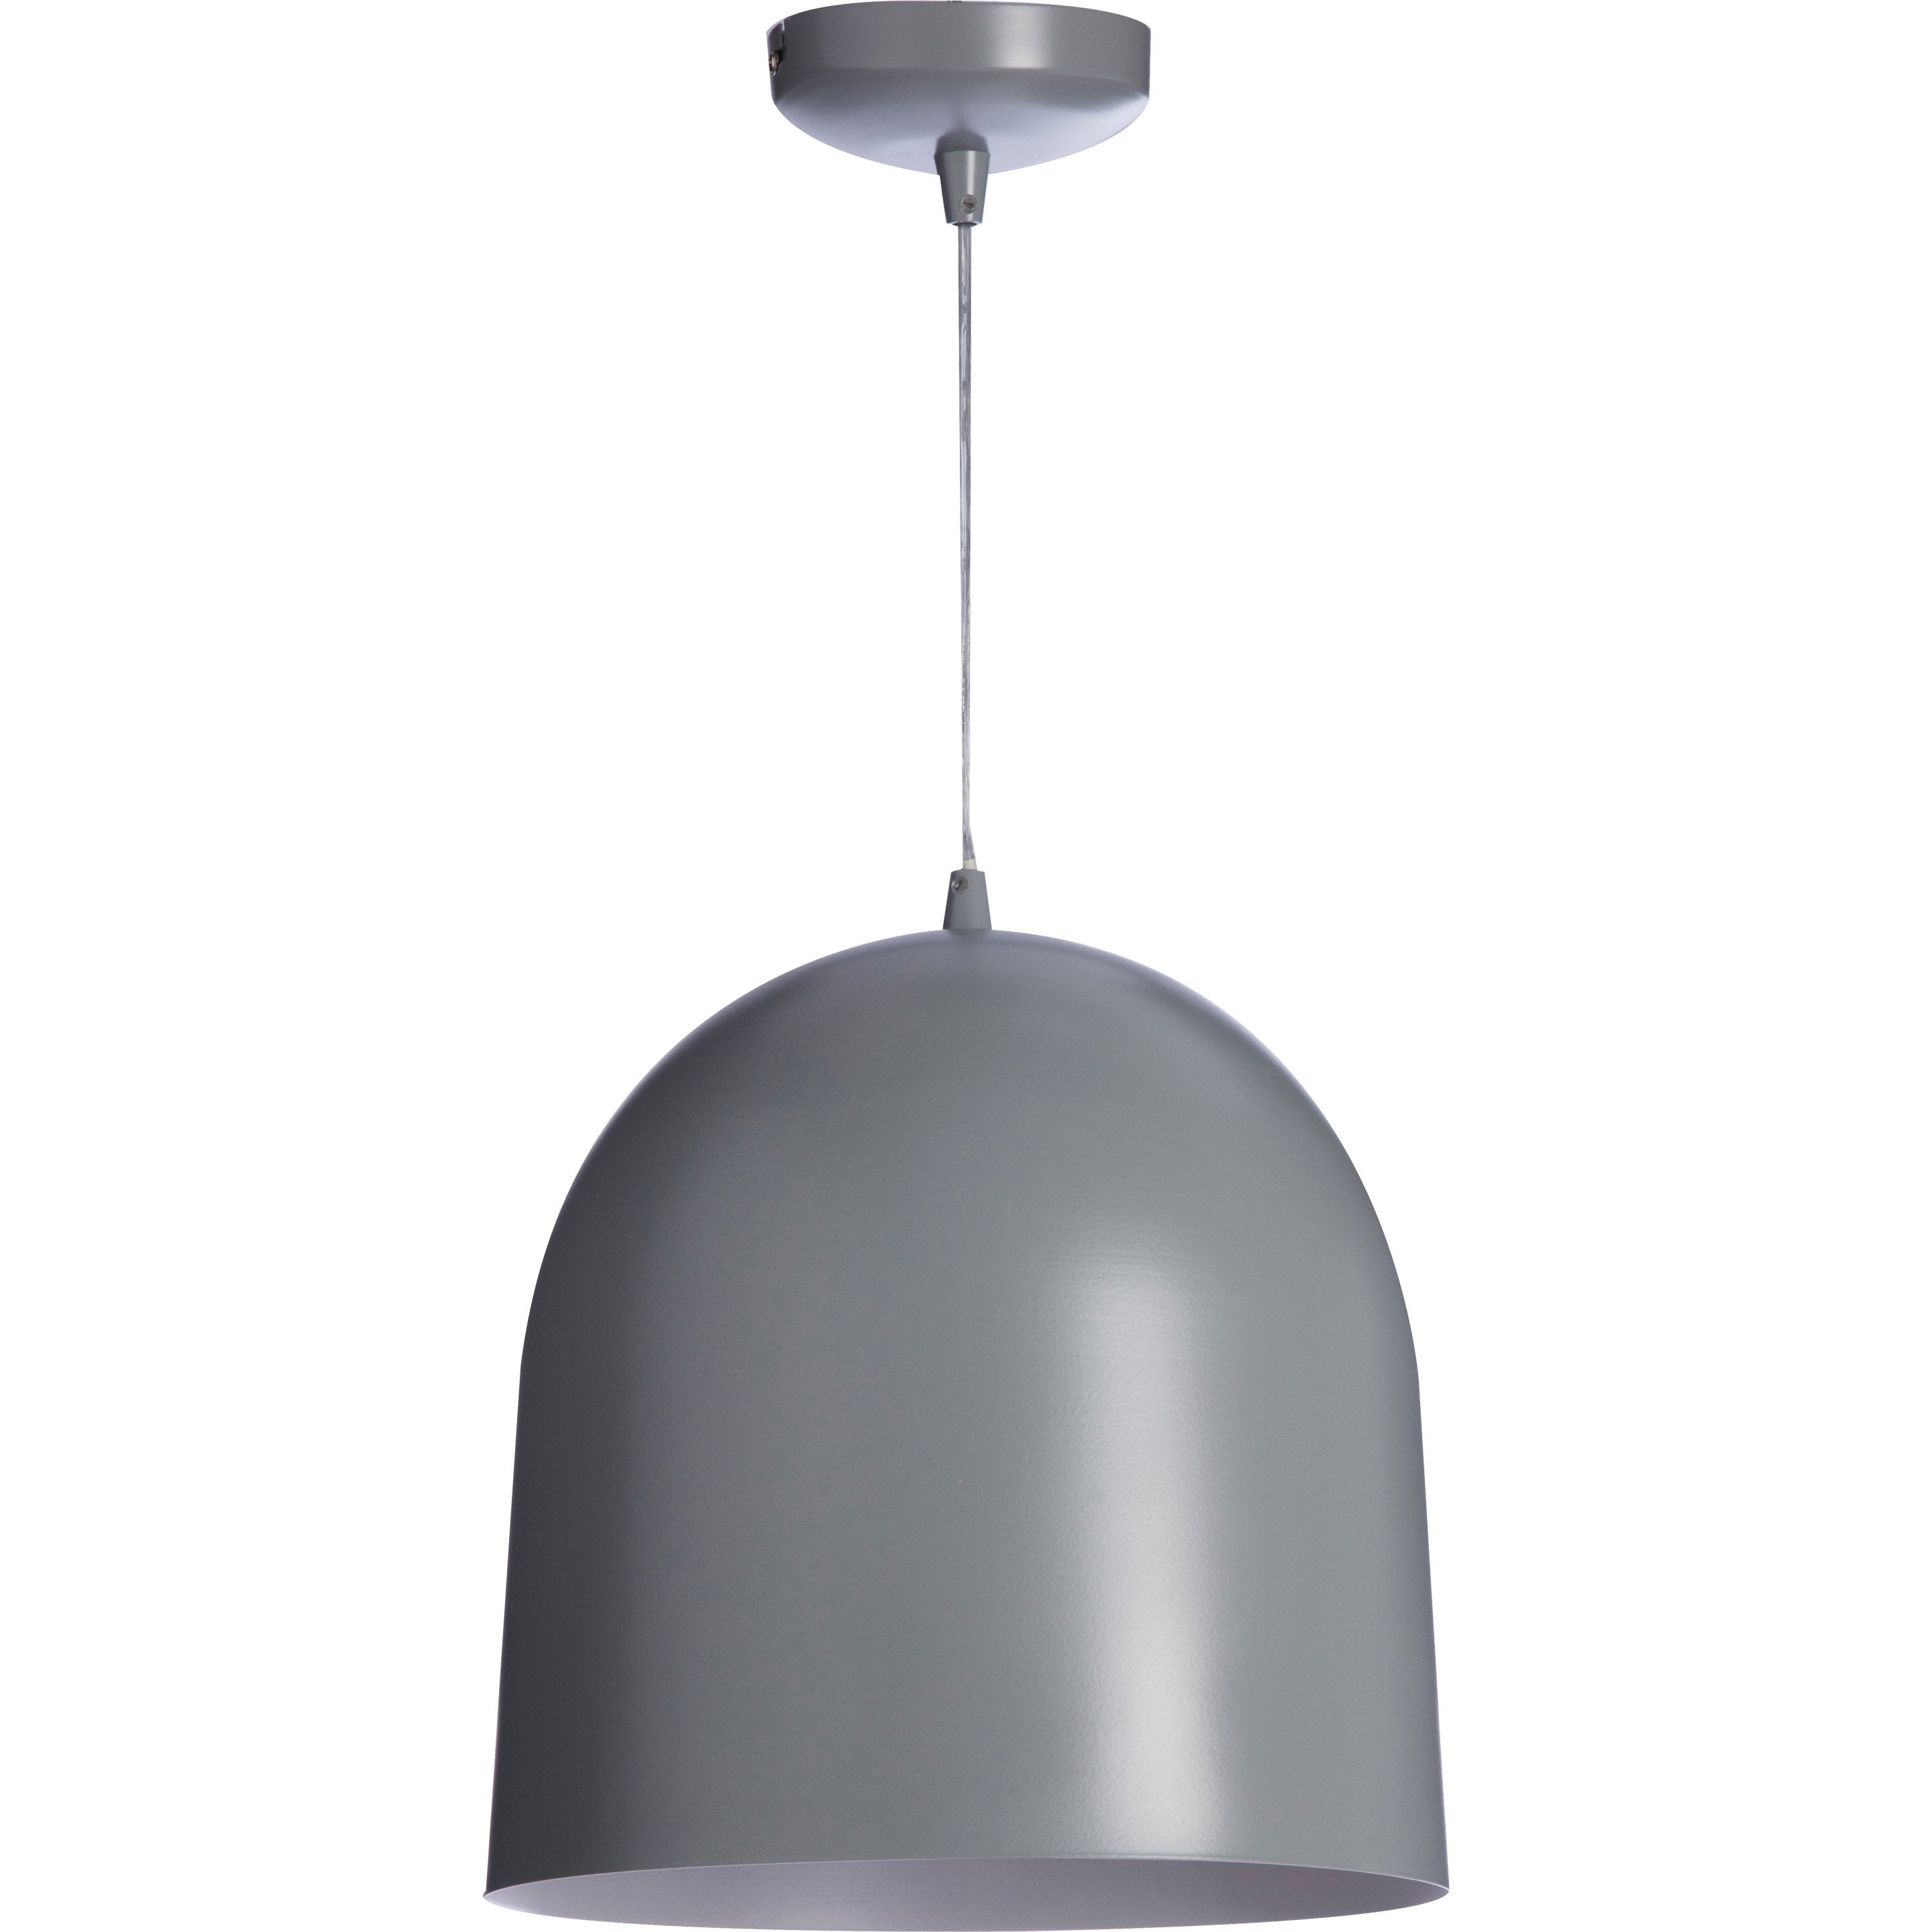 Suspension, E27 scandinave Loft métal gris 1 x 40 W LUSSIOL